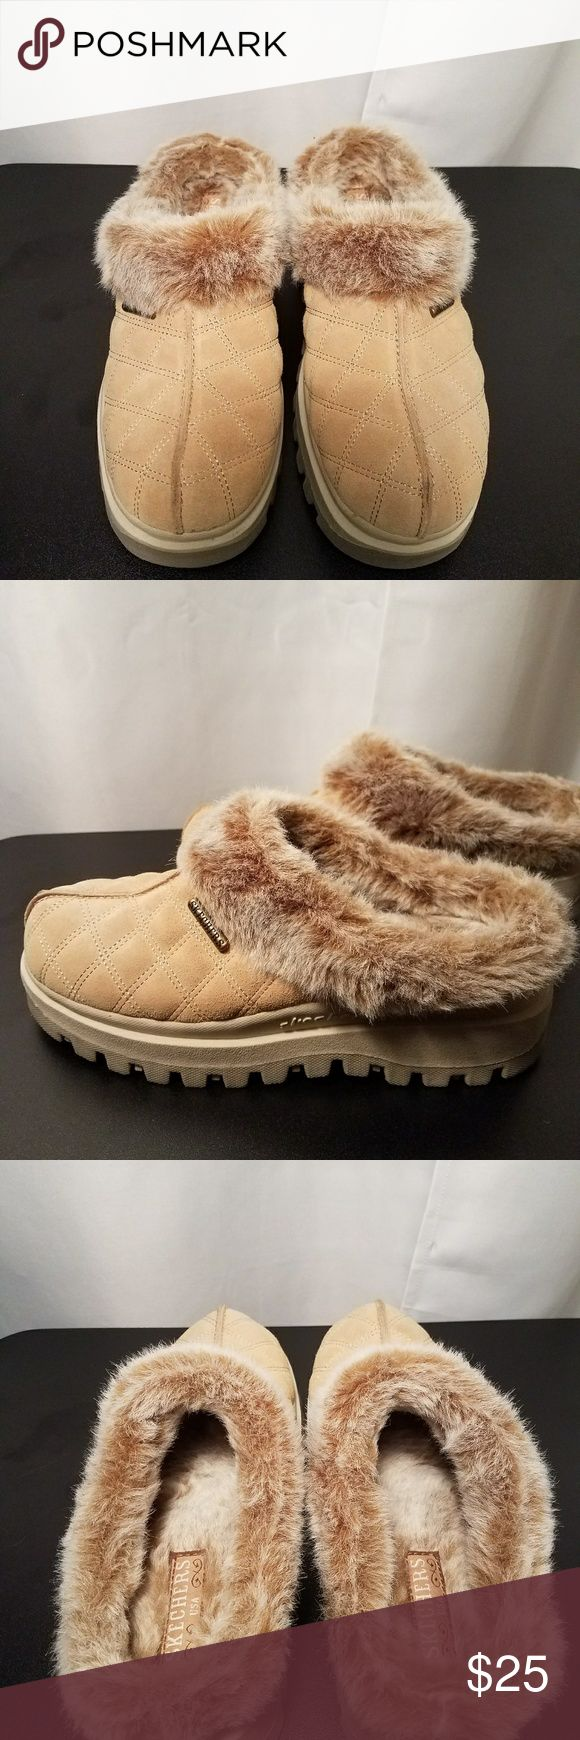 Skechers Slip On Mule Quilted split toe with faux fur lining.  New without tags Skechers Shoes Mules & Clogs